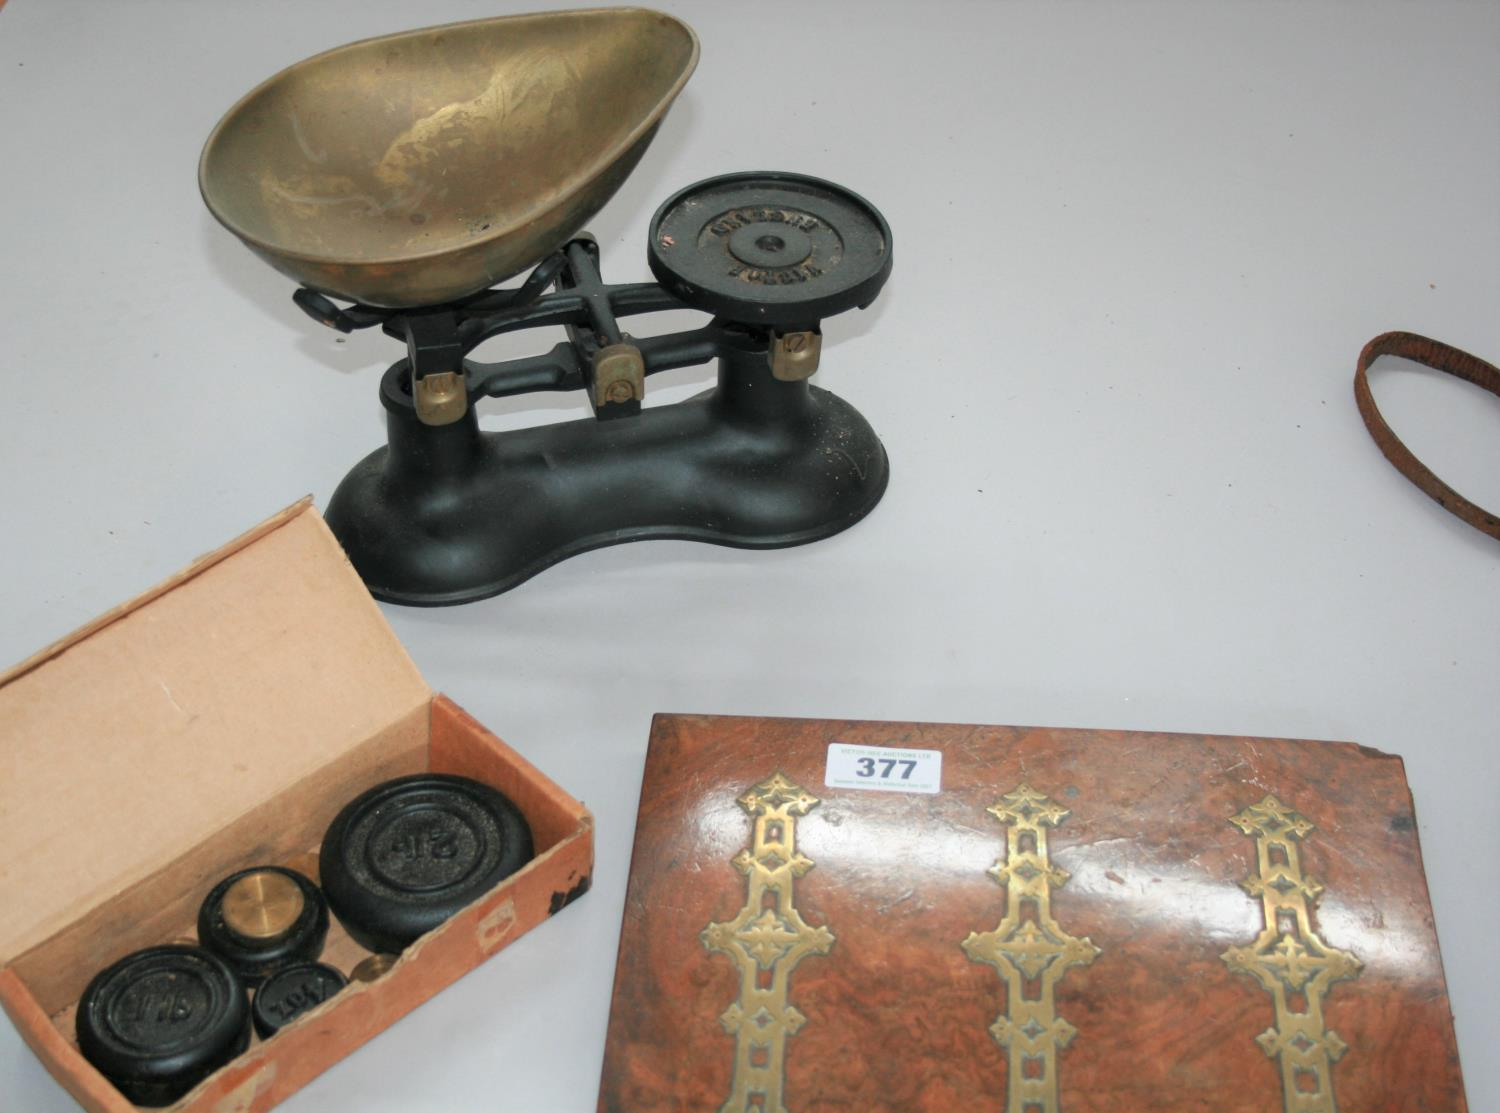 Antique walnut and brass stationary holder, vintage cameras, weighing scales and weights. - Image 3 of 3